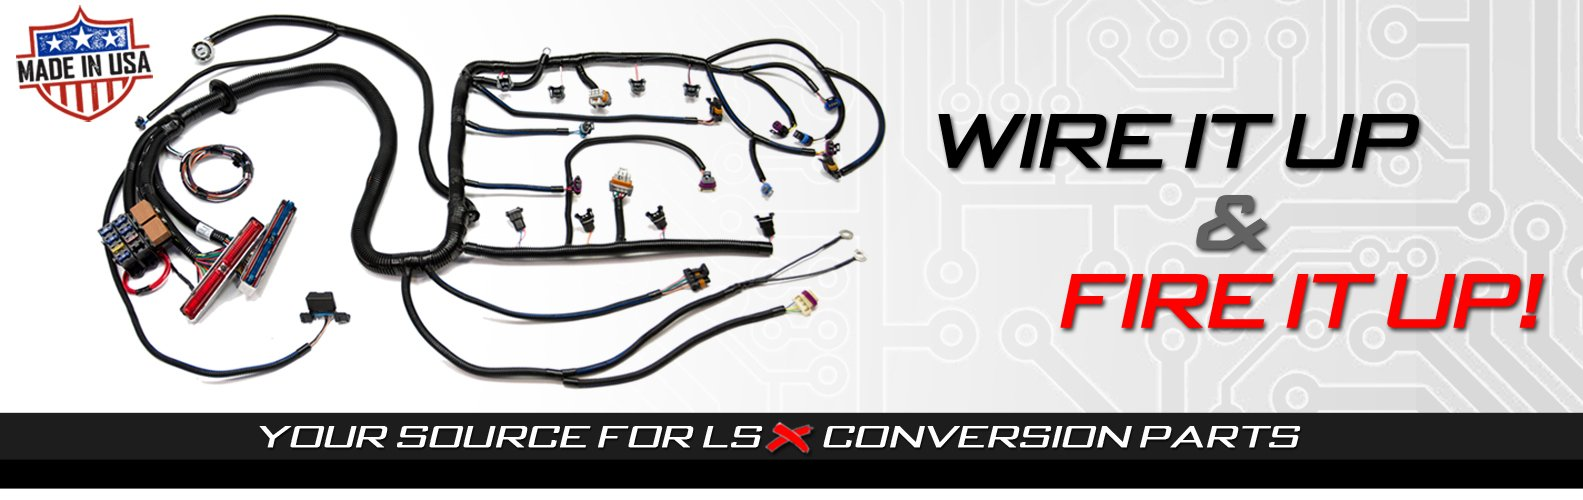 hight resolution of psi standalone wiring harness ls wiring ls wirng harness lsx harness lsx swap harness ls lsx ls1 ls2 ls3 ls7 lsa ls9 lt1